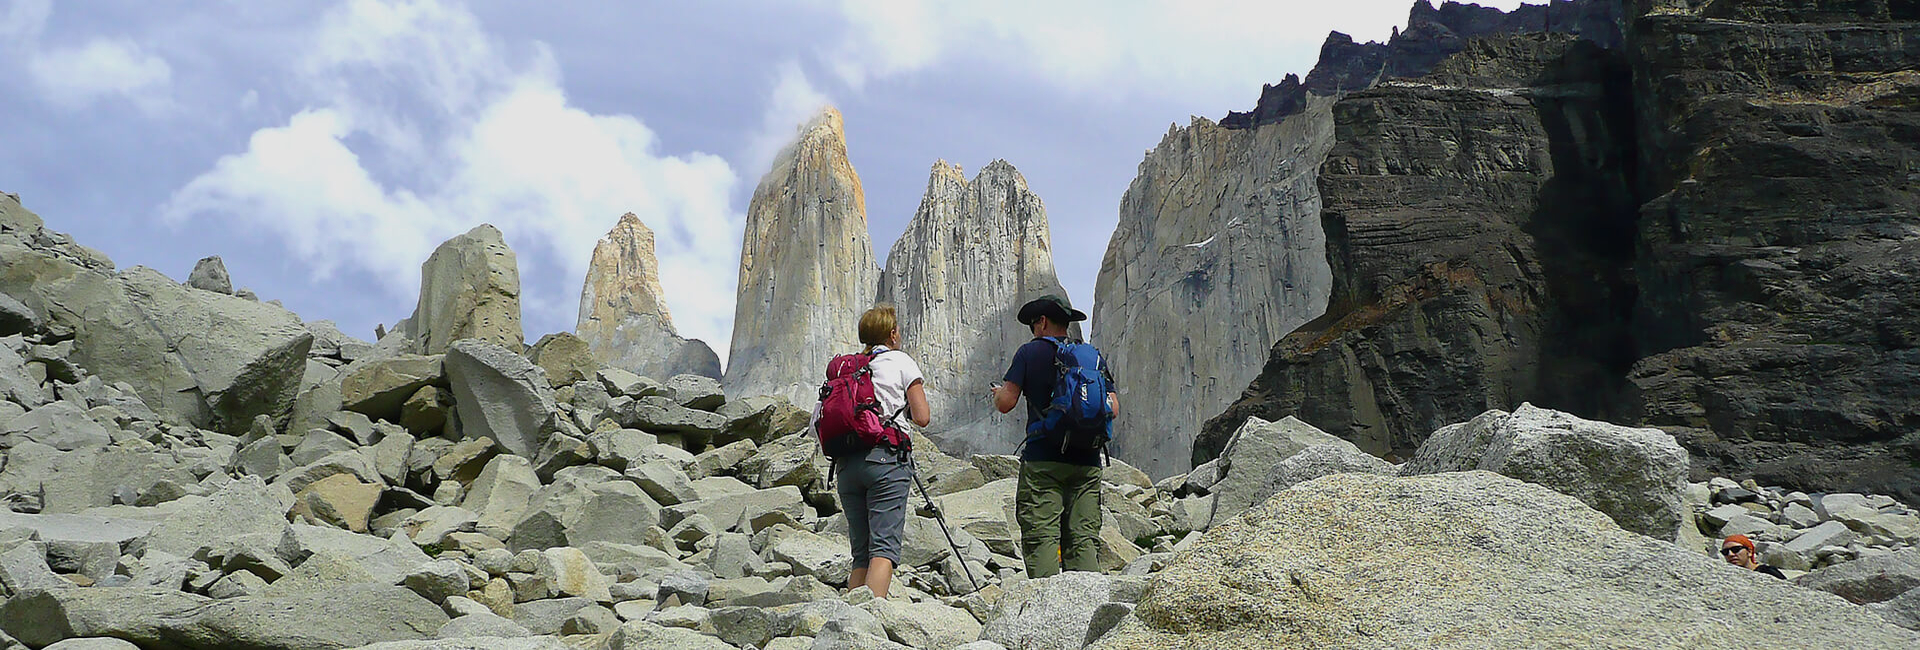 Hikers at the Viewpoint Torres del Paine Towers